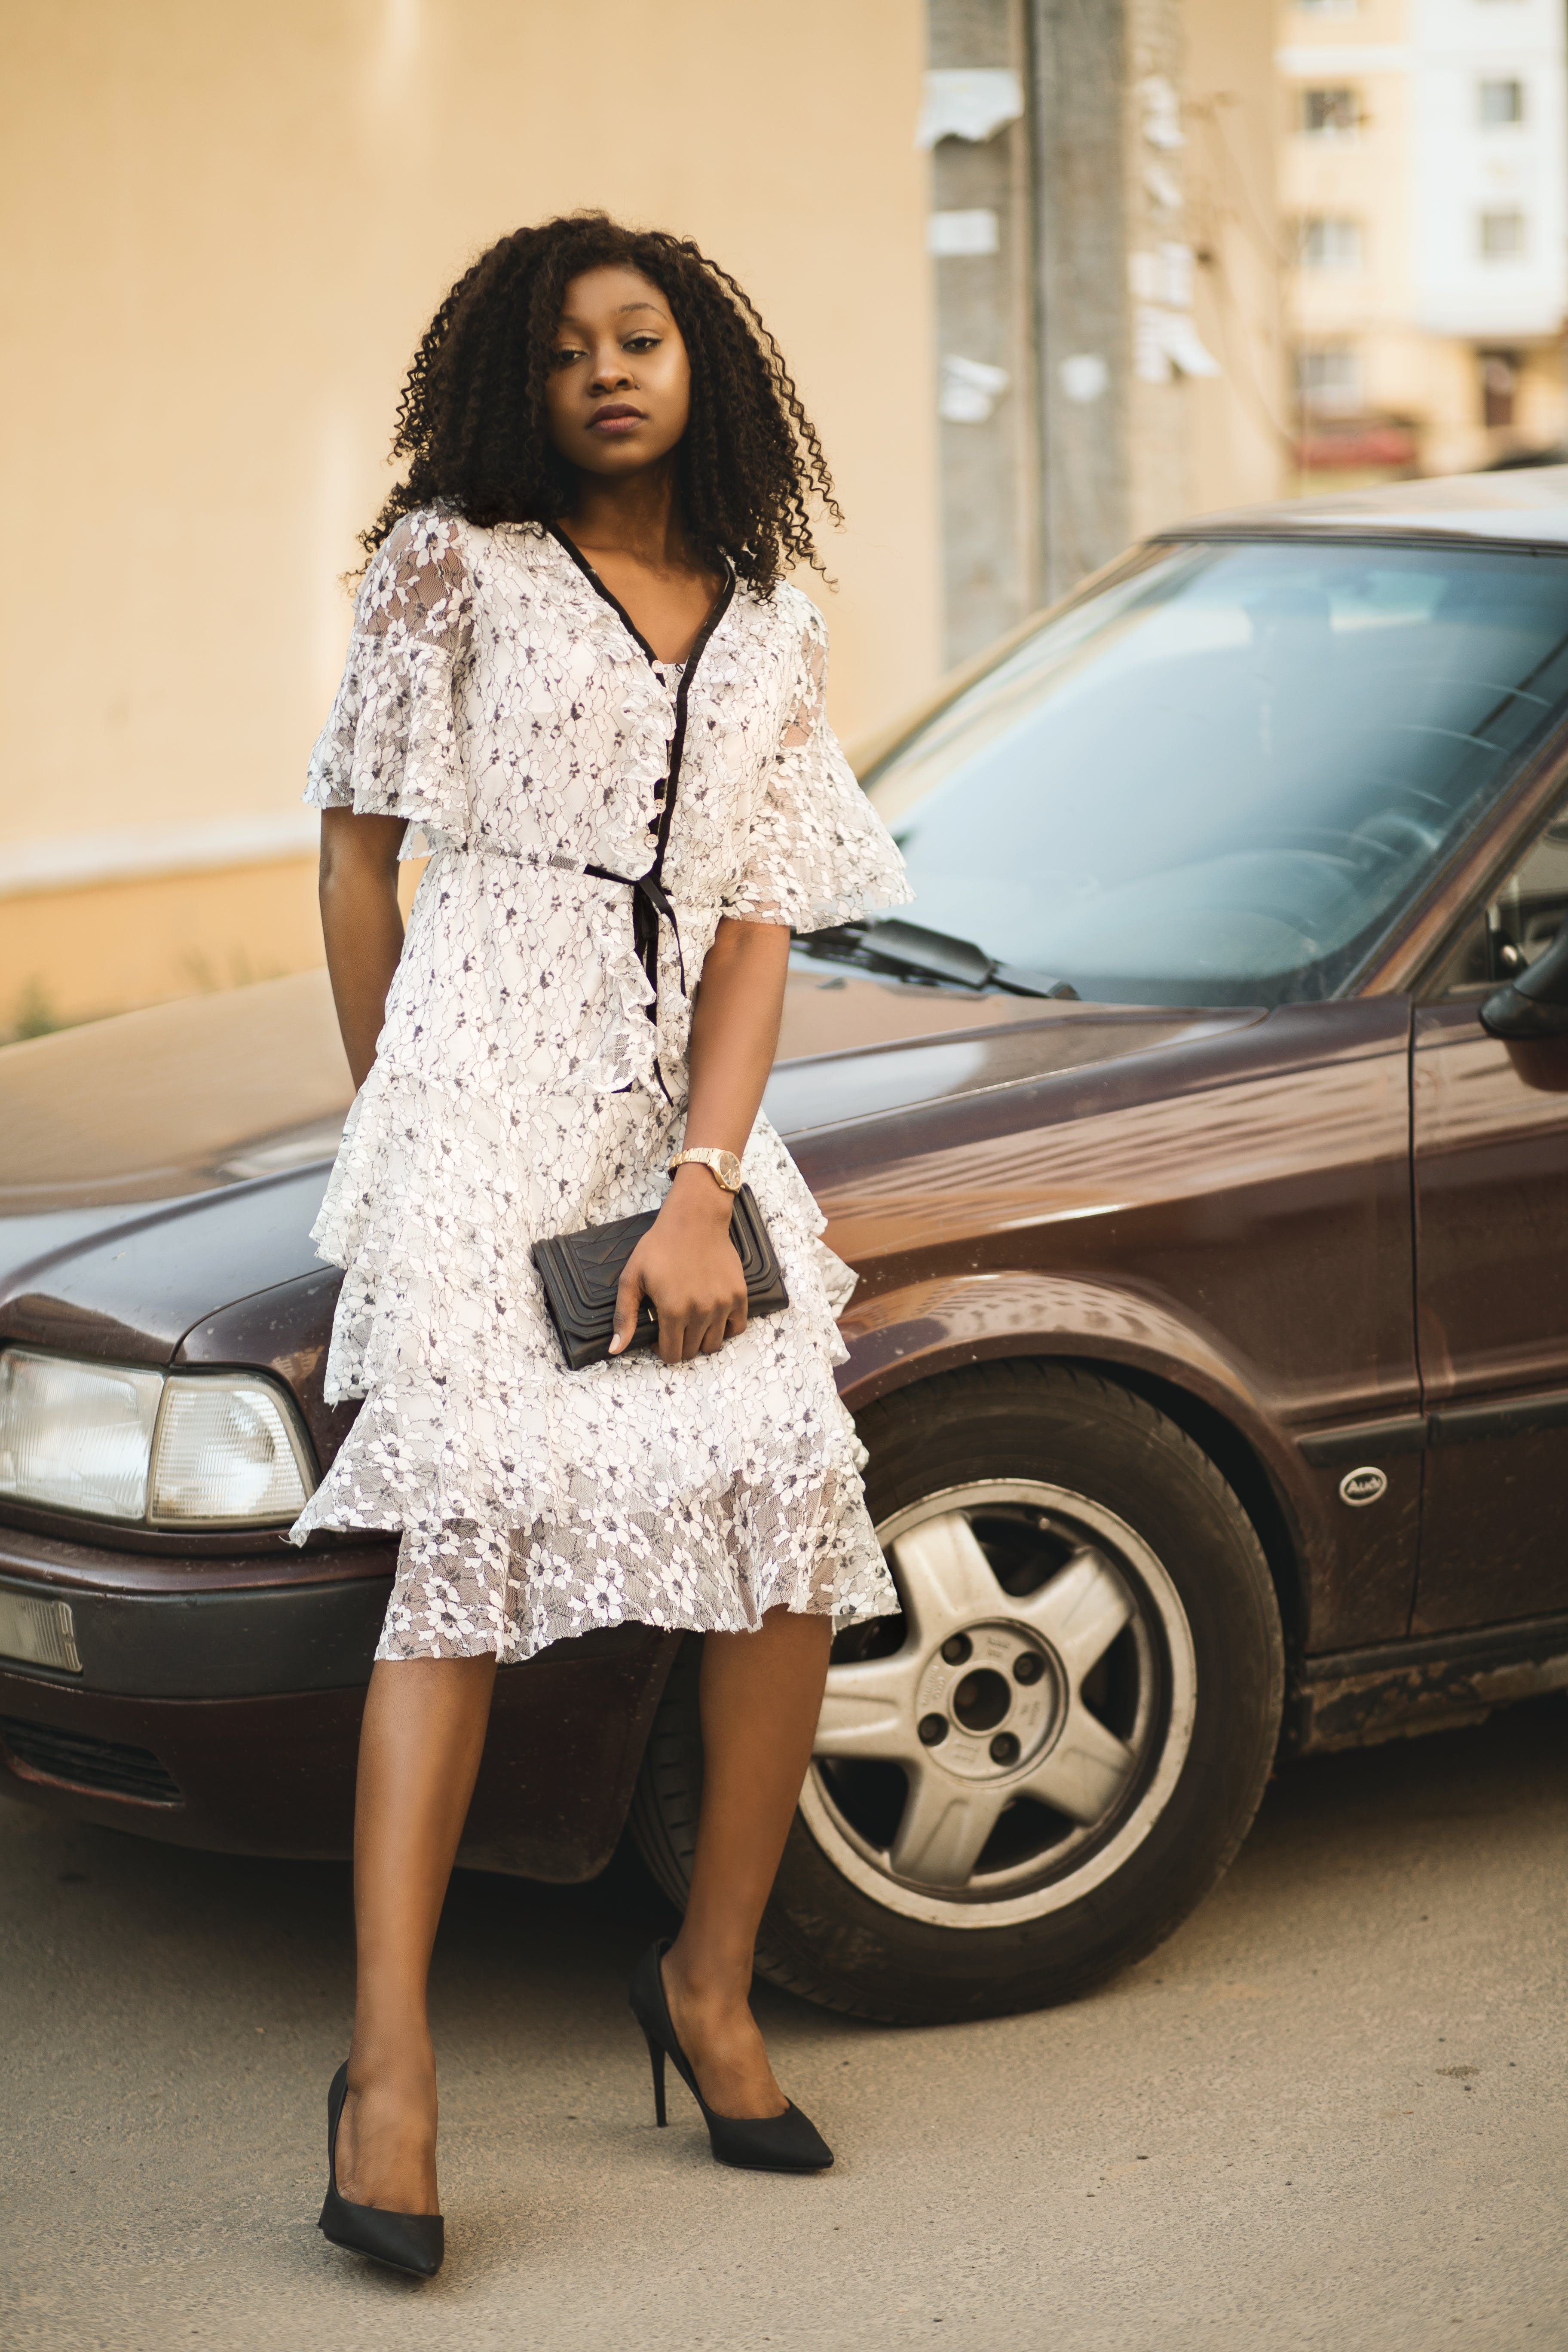 Woman Wearing White Dress Leaning on Brown Vehicle